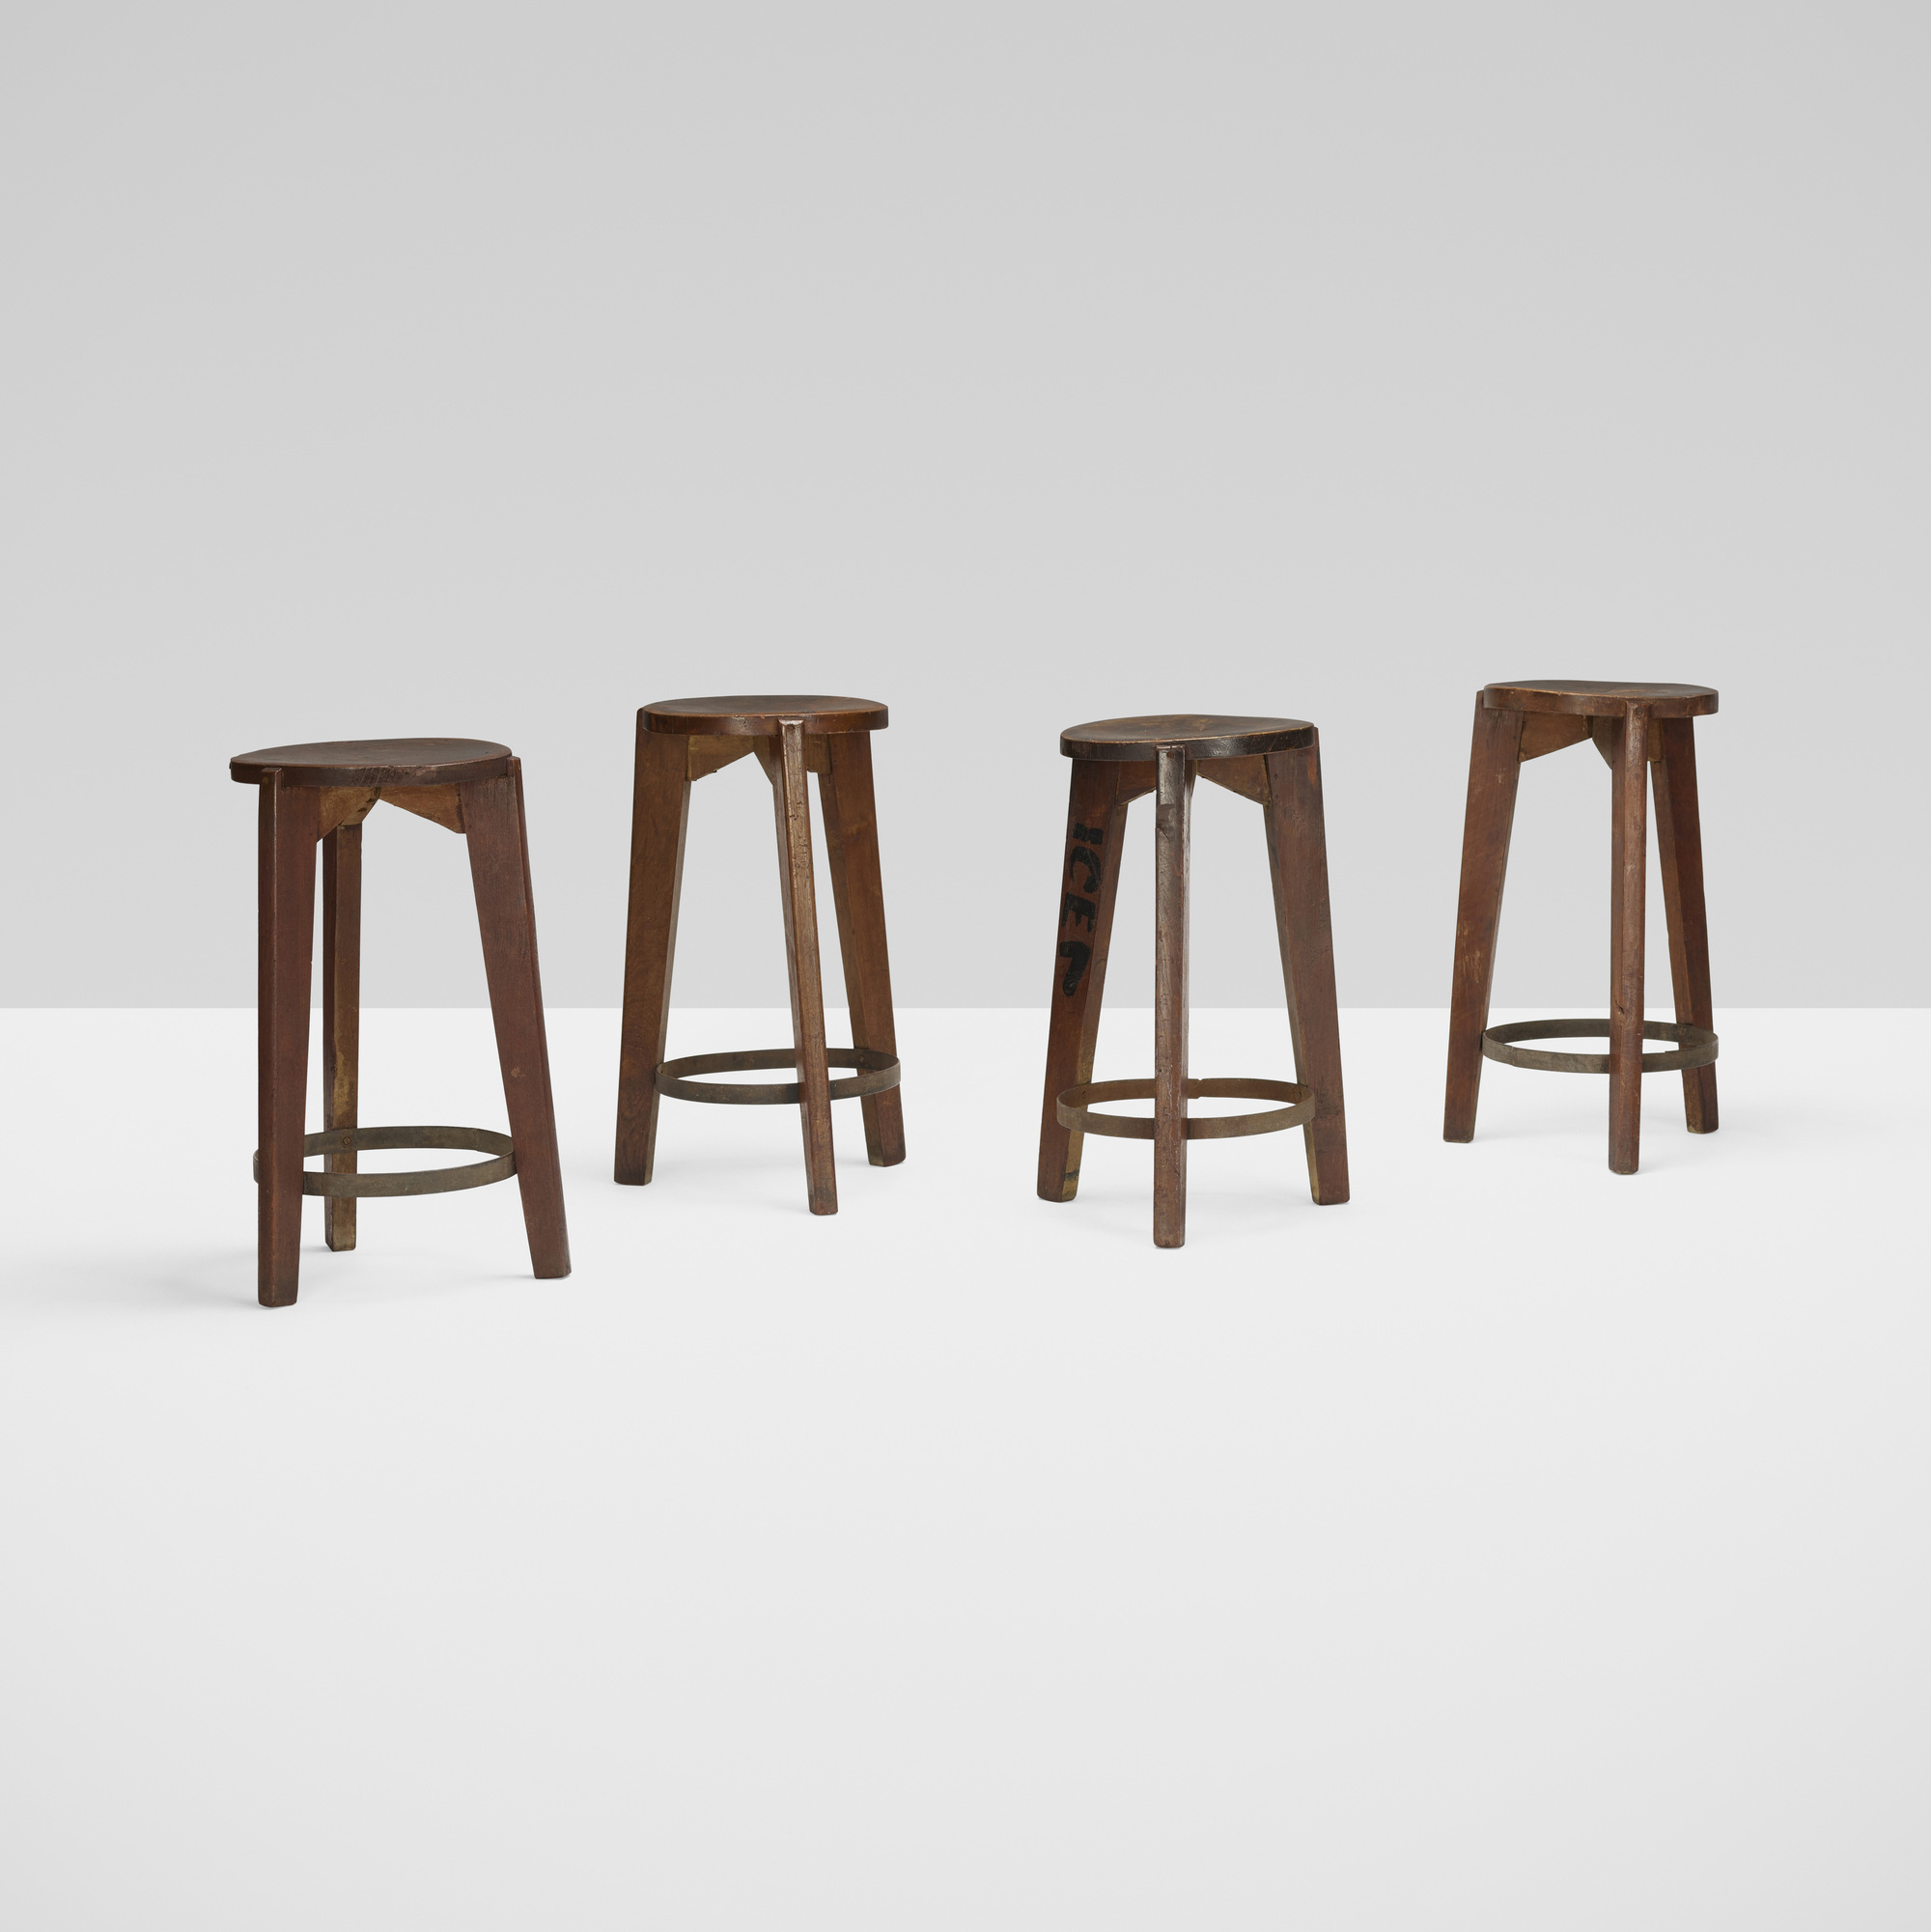 106: Pierre Jeanneret / set of four stools from Punjab University, Chandigarh (2 of 4)